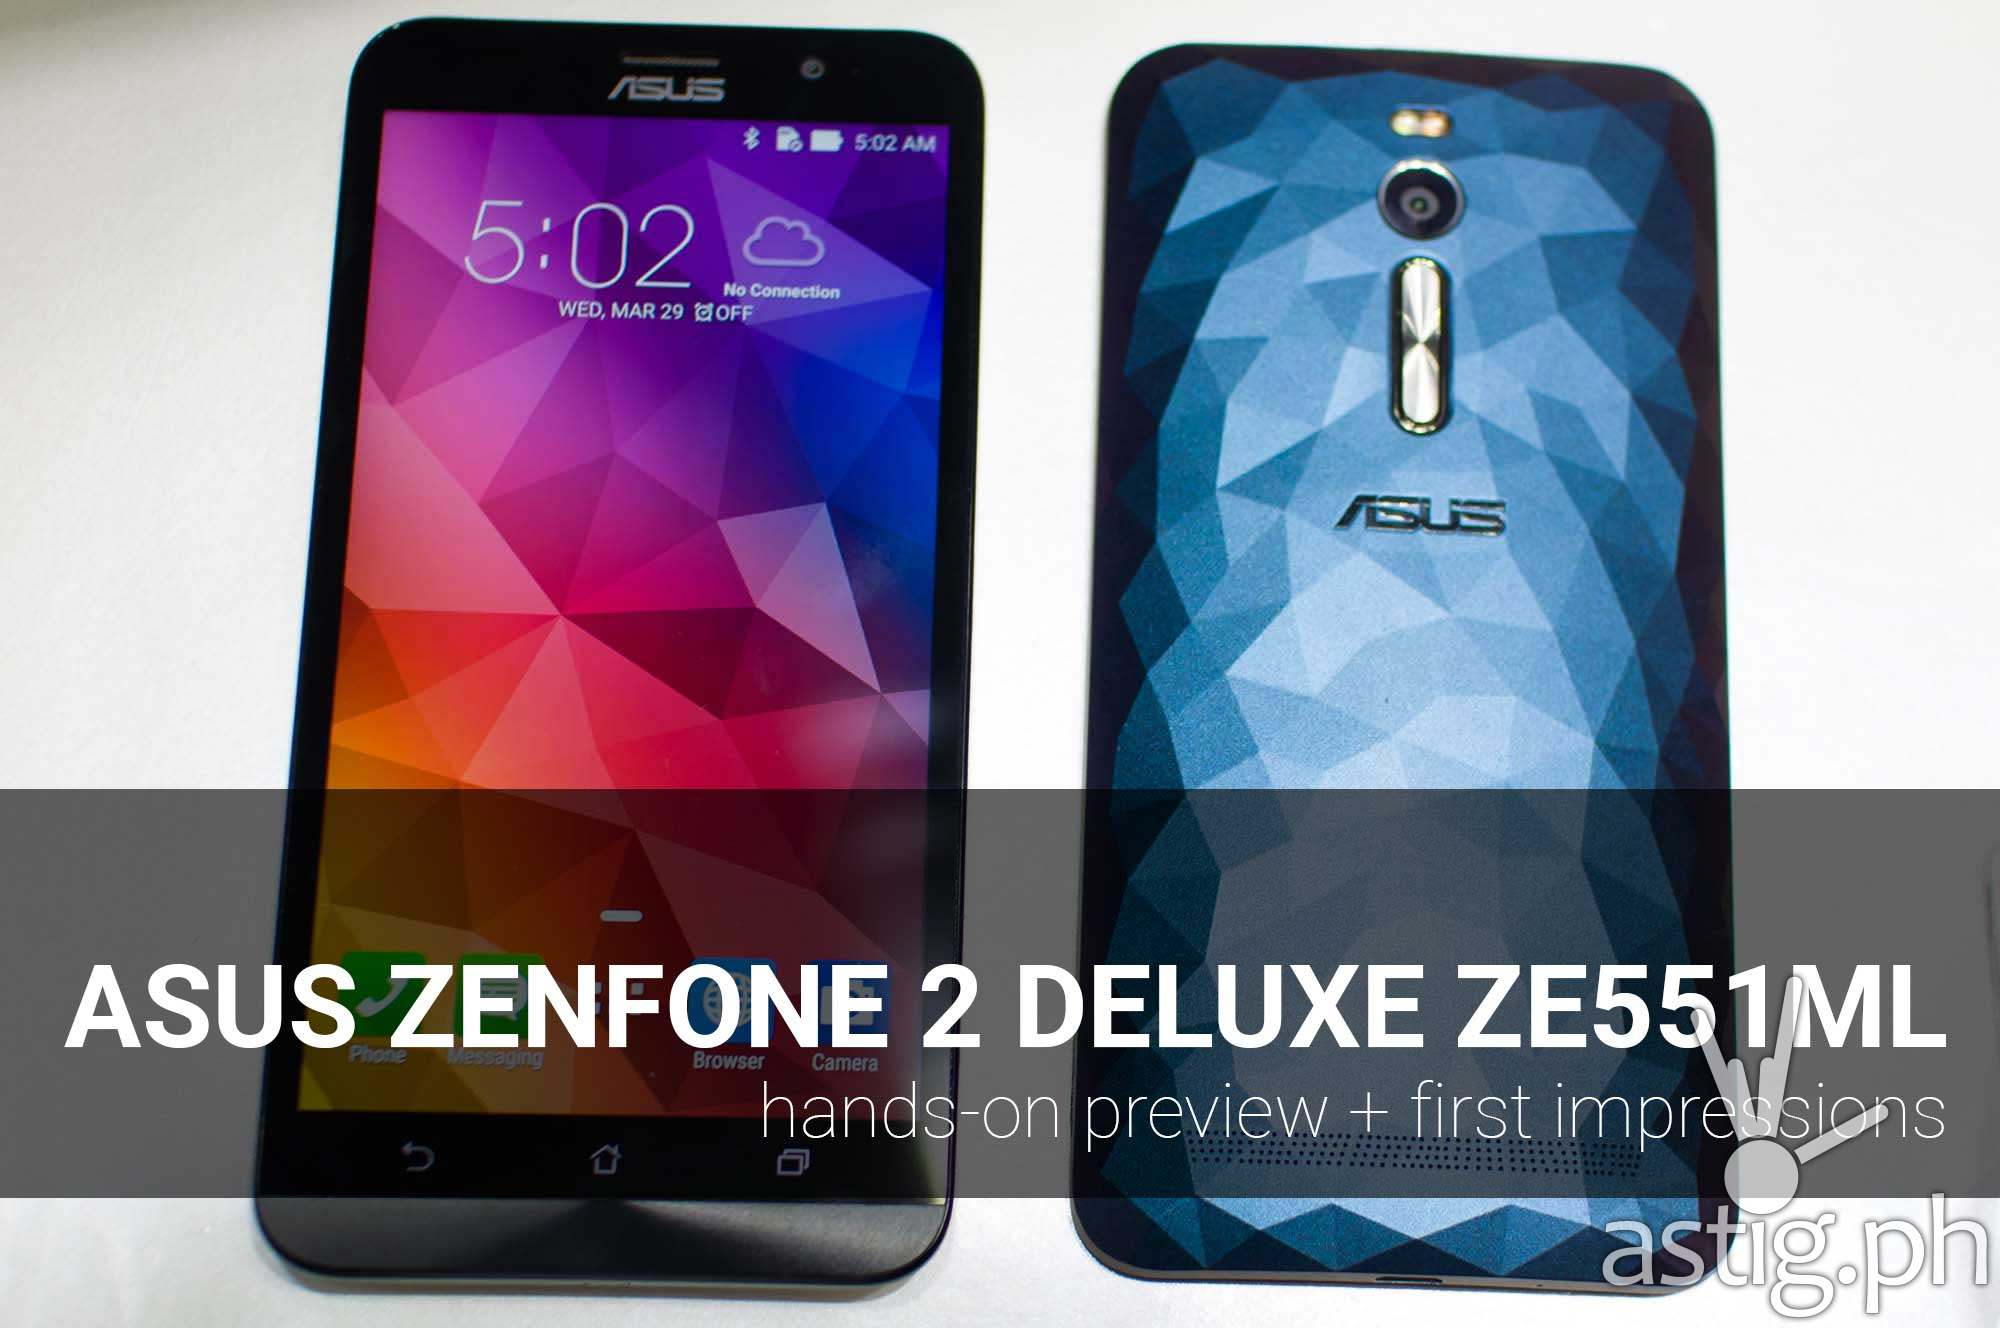 asus zenfone 2 deluxe preview first impressions video cover